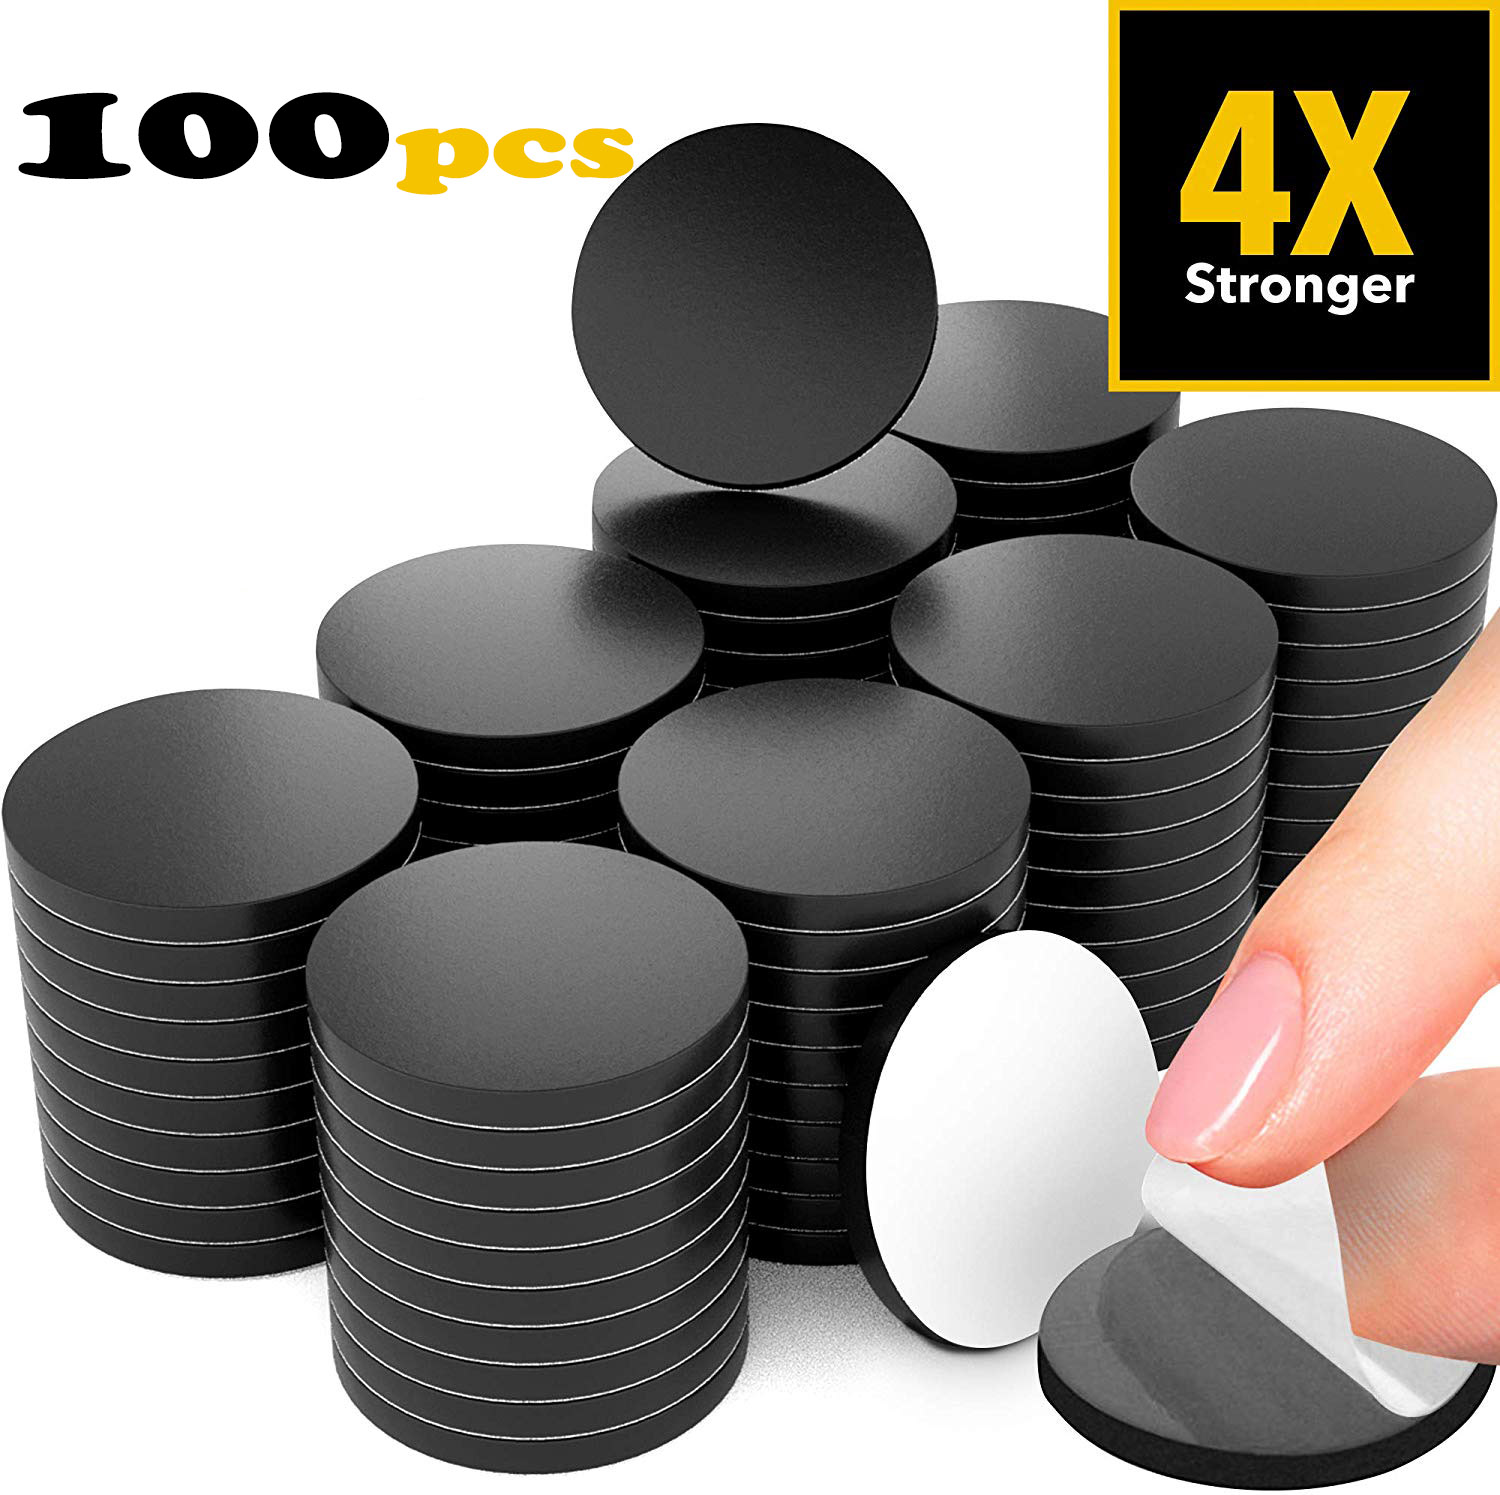 100pcs Peel Magnetic Circles Flexible Sticky Magnets Sheets Alternative Magnetic Stickers Strip Tape For Blackboard Teaching